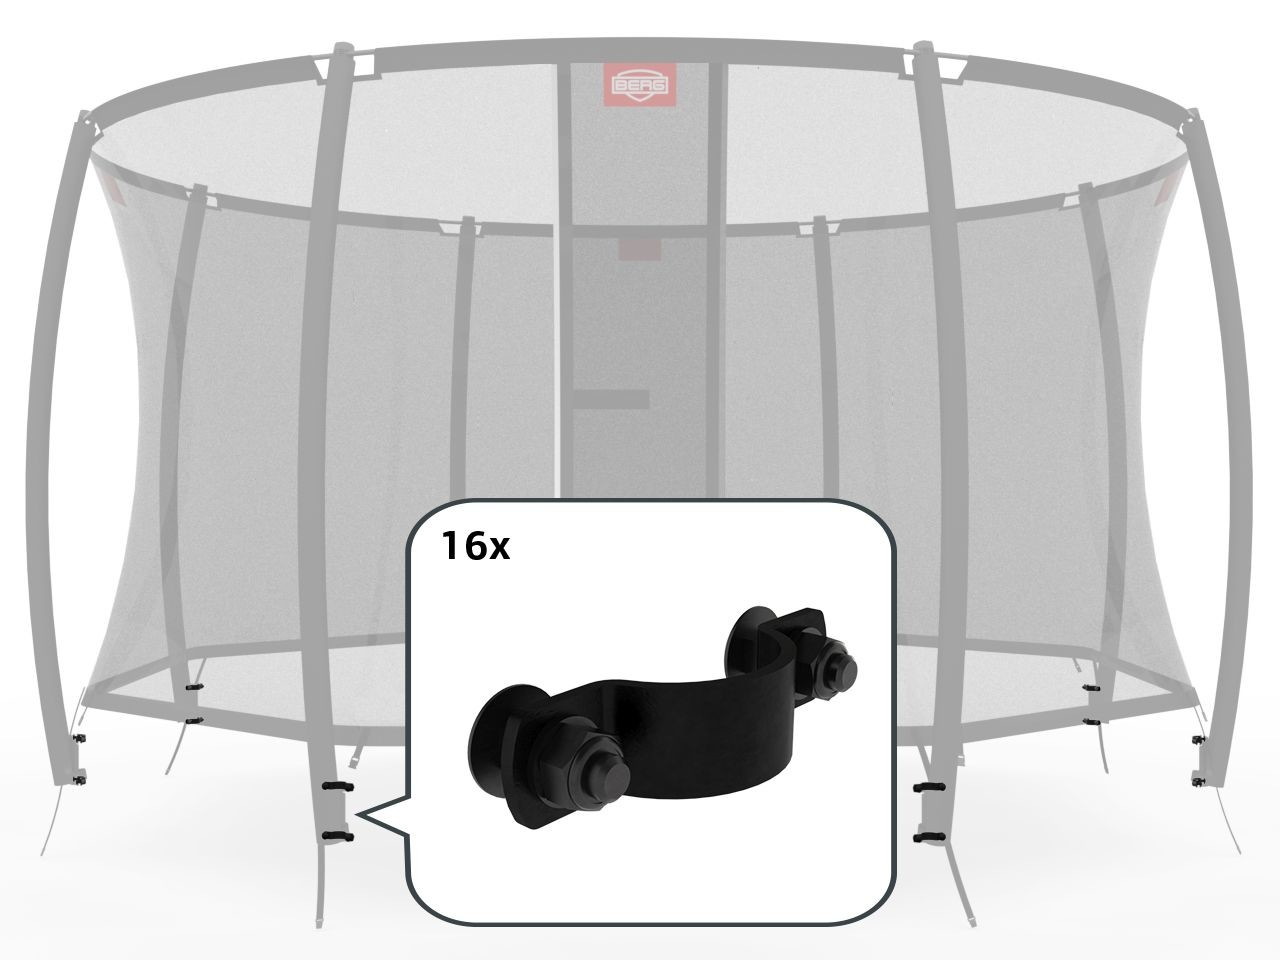 Safety Net Deluxe - Fasteners for 8 poles